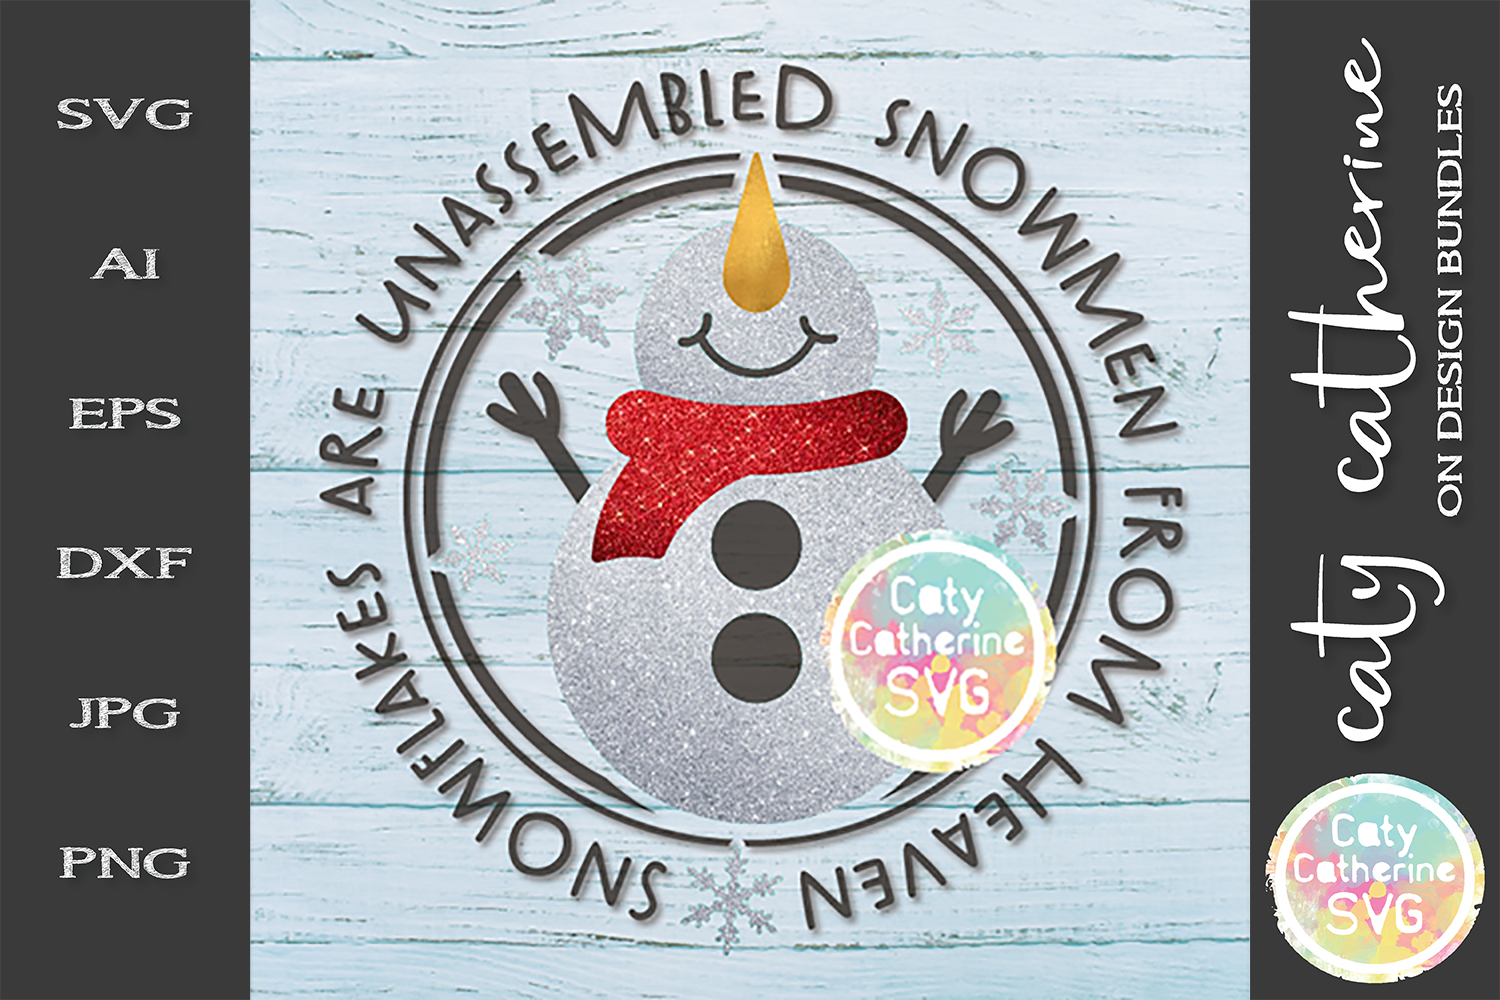 Snowflakes Are Unassembled Snowmen From Heaven SVG Cut File example image 1